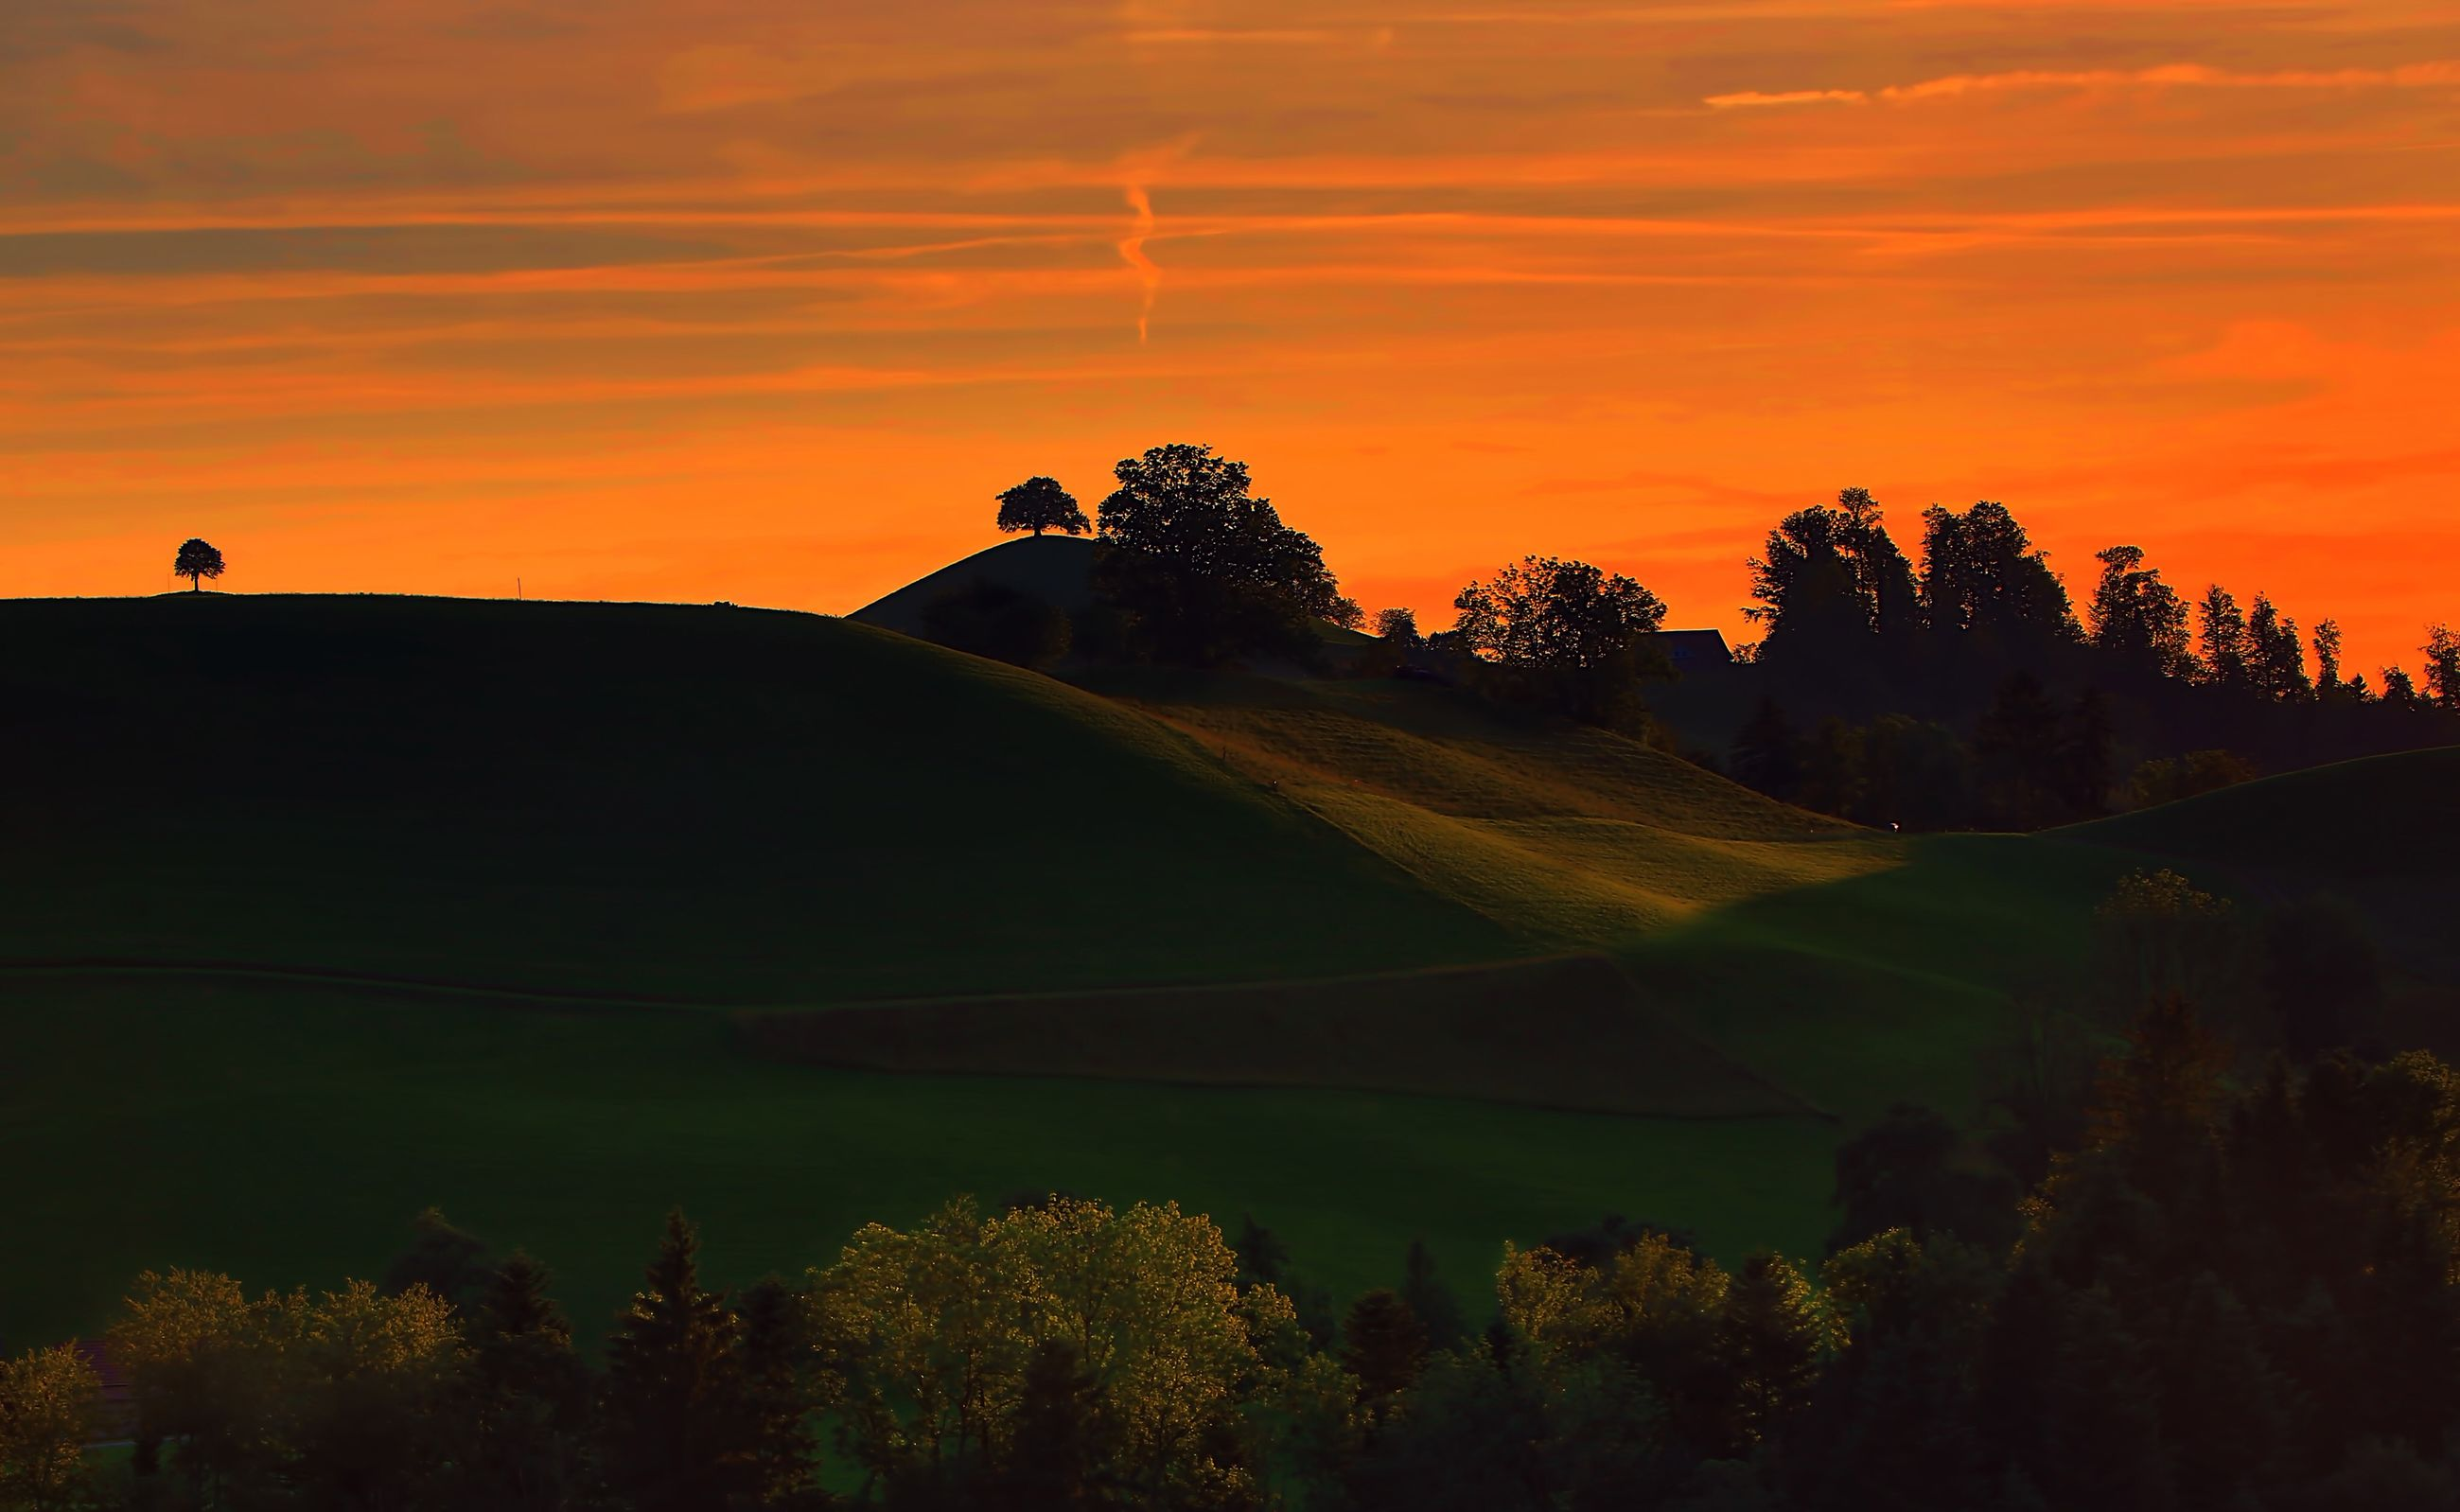 sunset, orange color, tree, beauty in nature, nature, scenics, silhouette, tranquil scene, landscape, tranquility, sky, no people, outdoors, growth, golf course, day